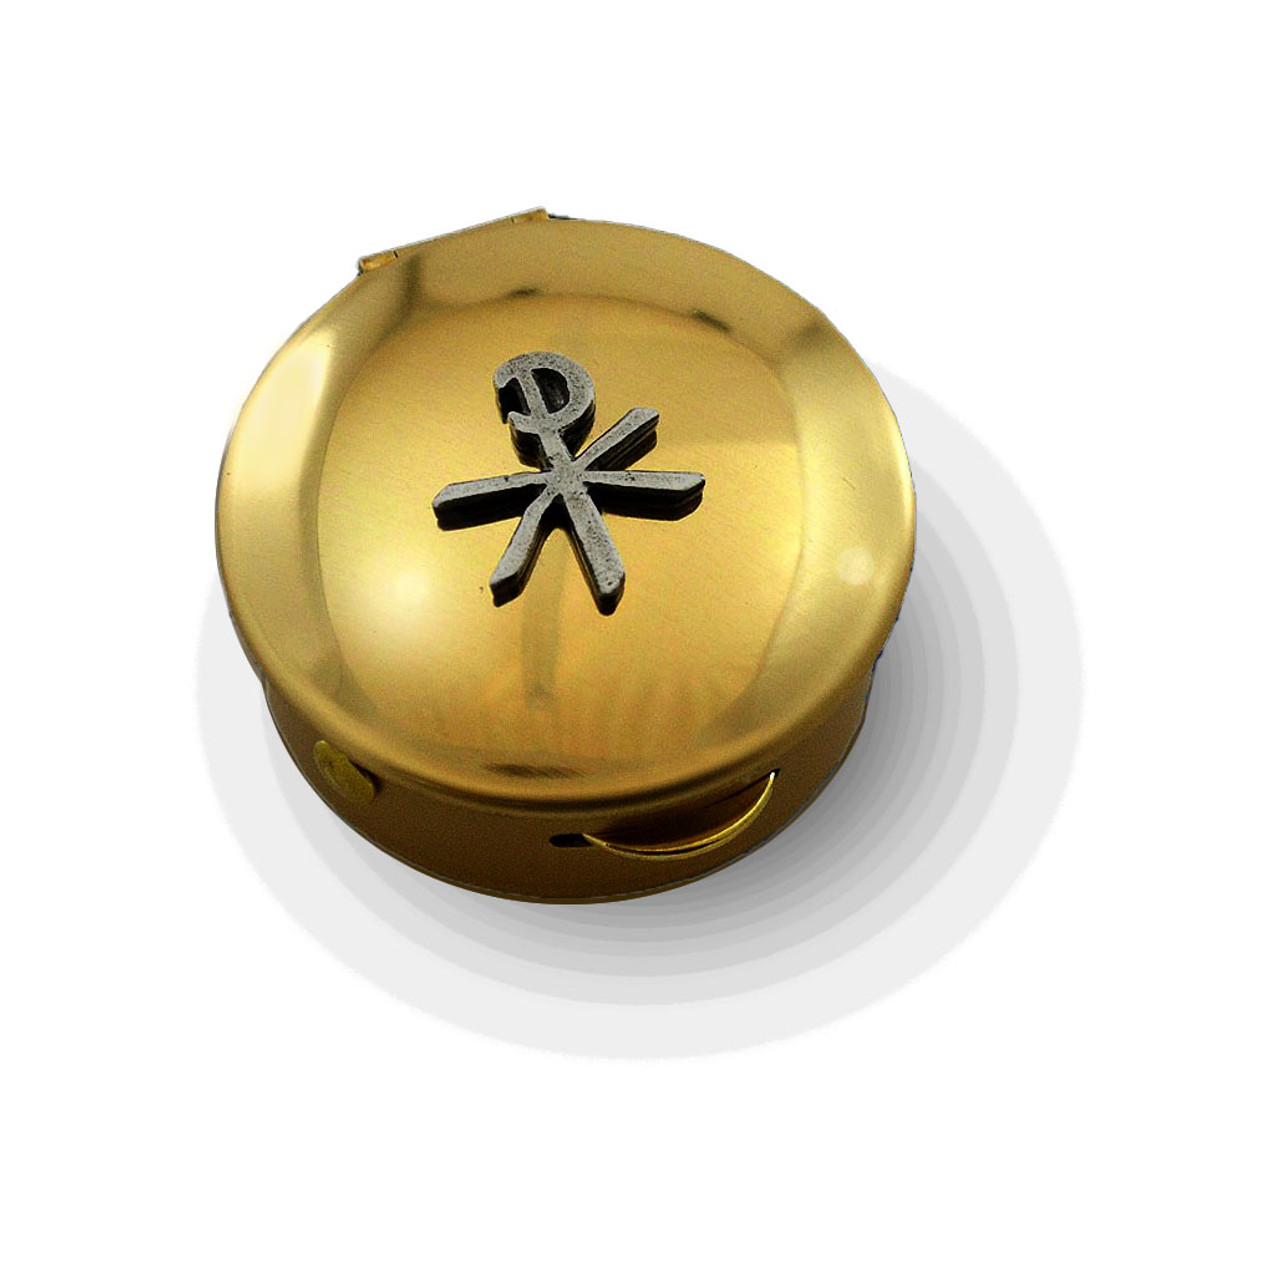 PS 131 Small Brass Pyx with Chi Rho